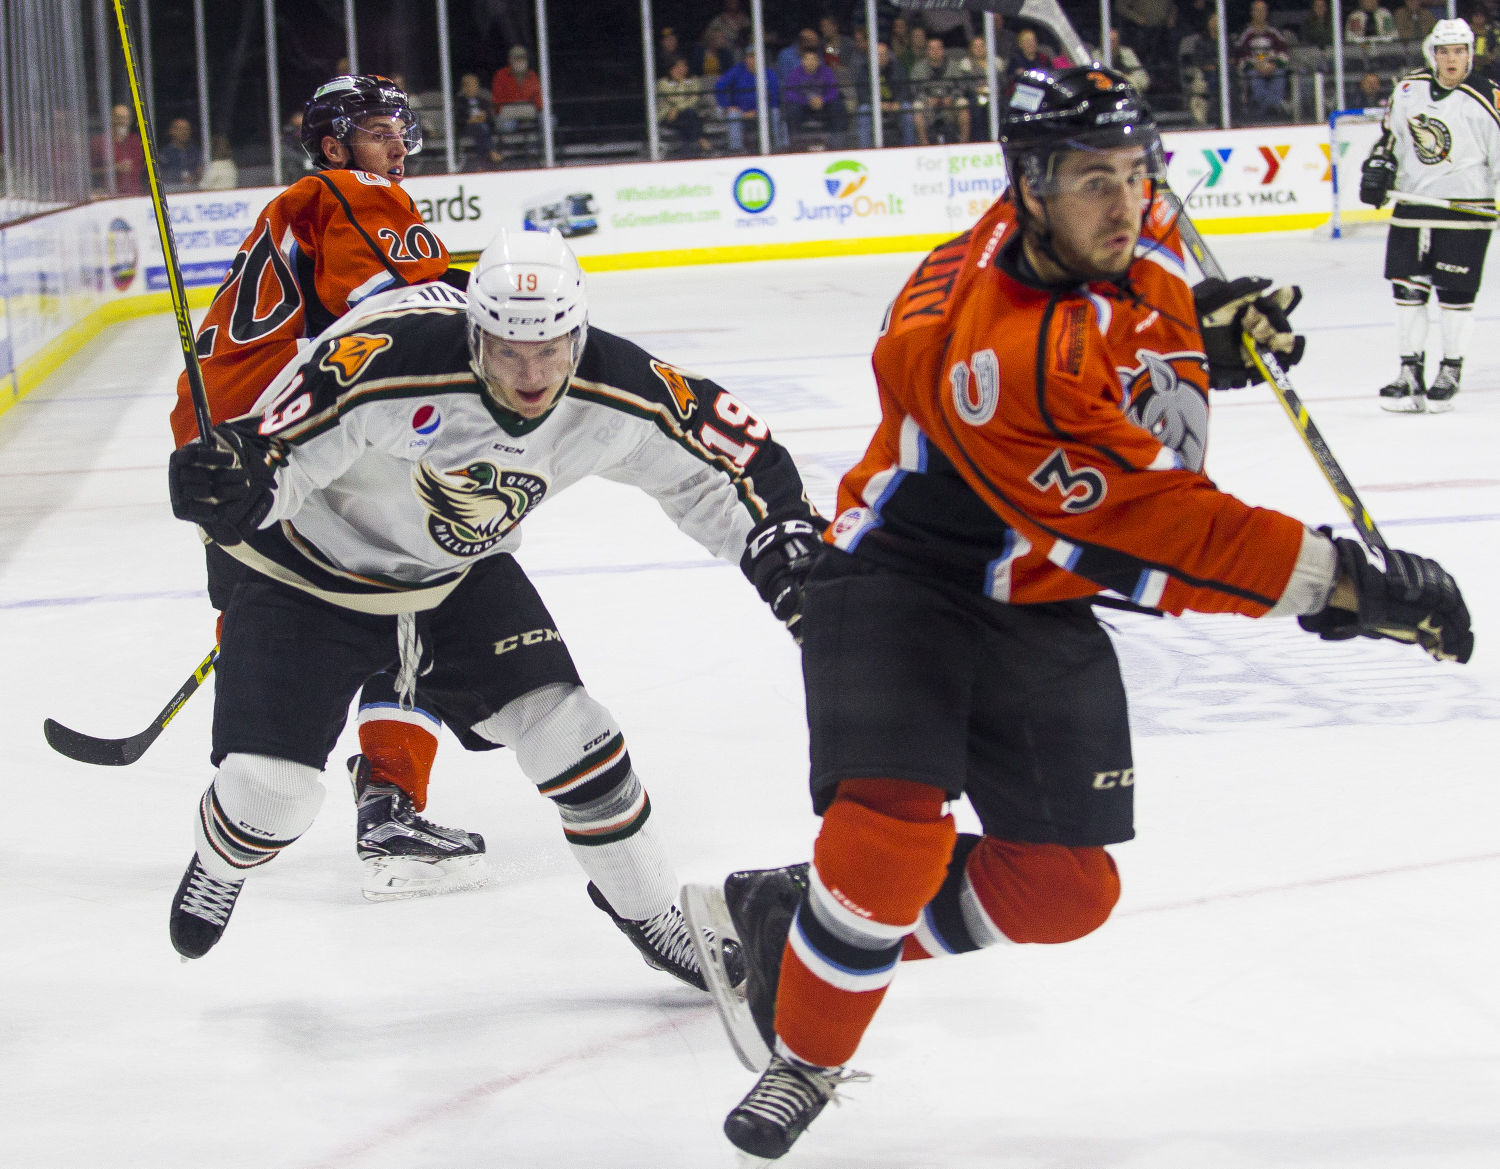 ECHL: Mallards' Special Teams Leading The Way